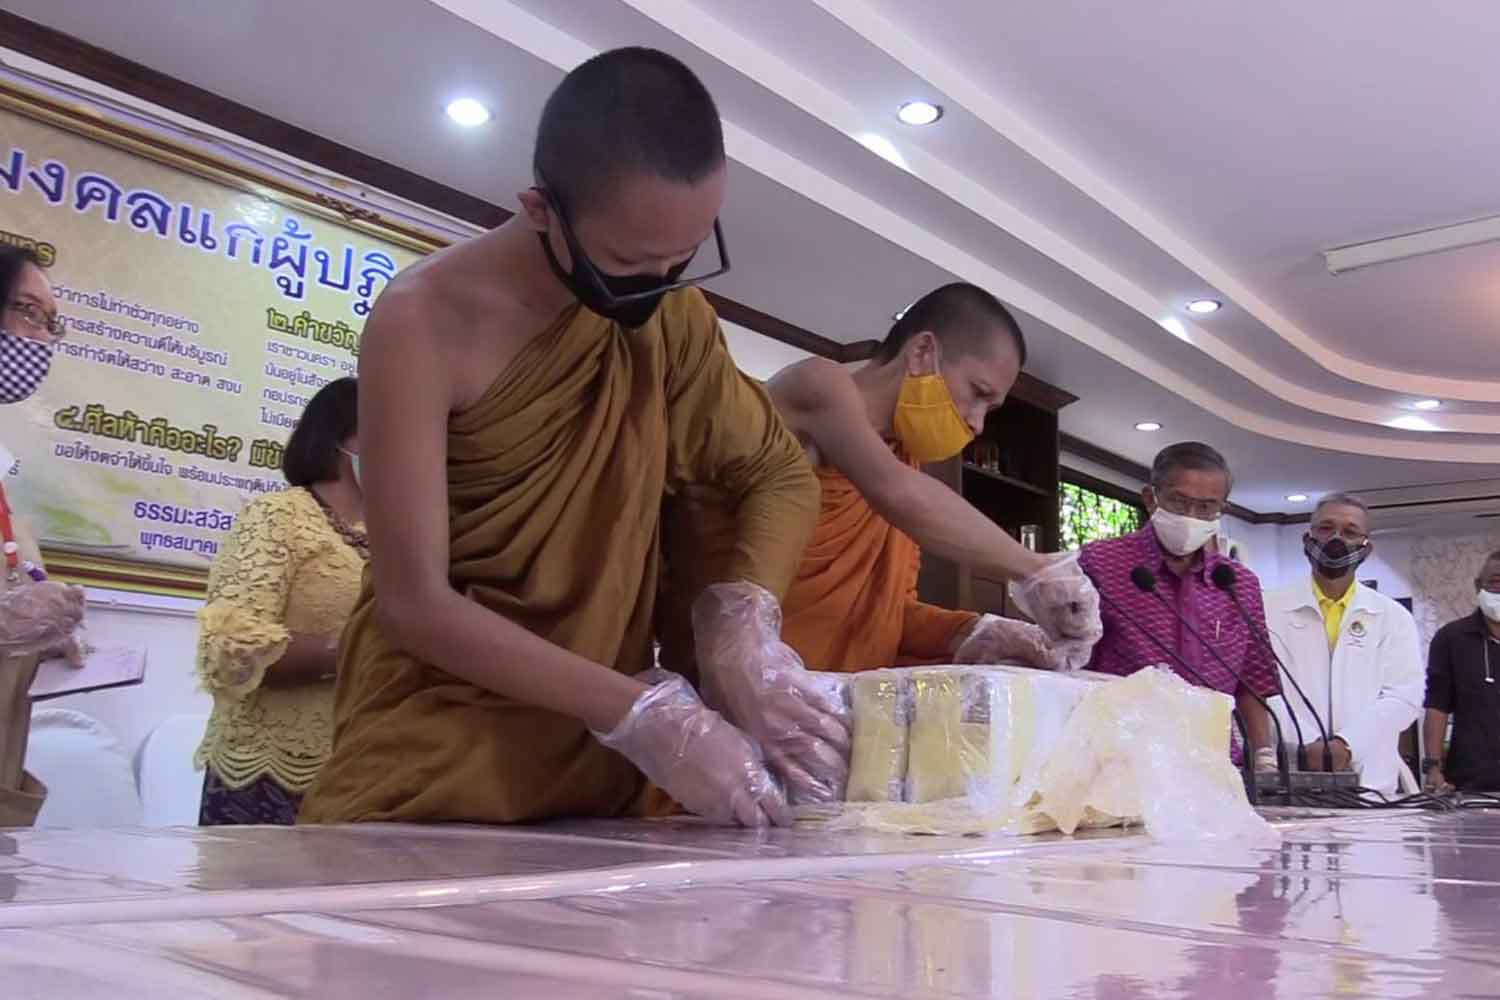 Monks examine some of the stolen books returned to the Arts and Cultural Centre of Nakhon Si Thammarat Rajabhat University. (Photo: Nujaree Raekrun)